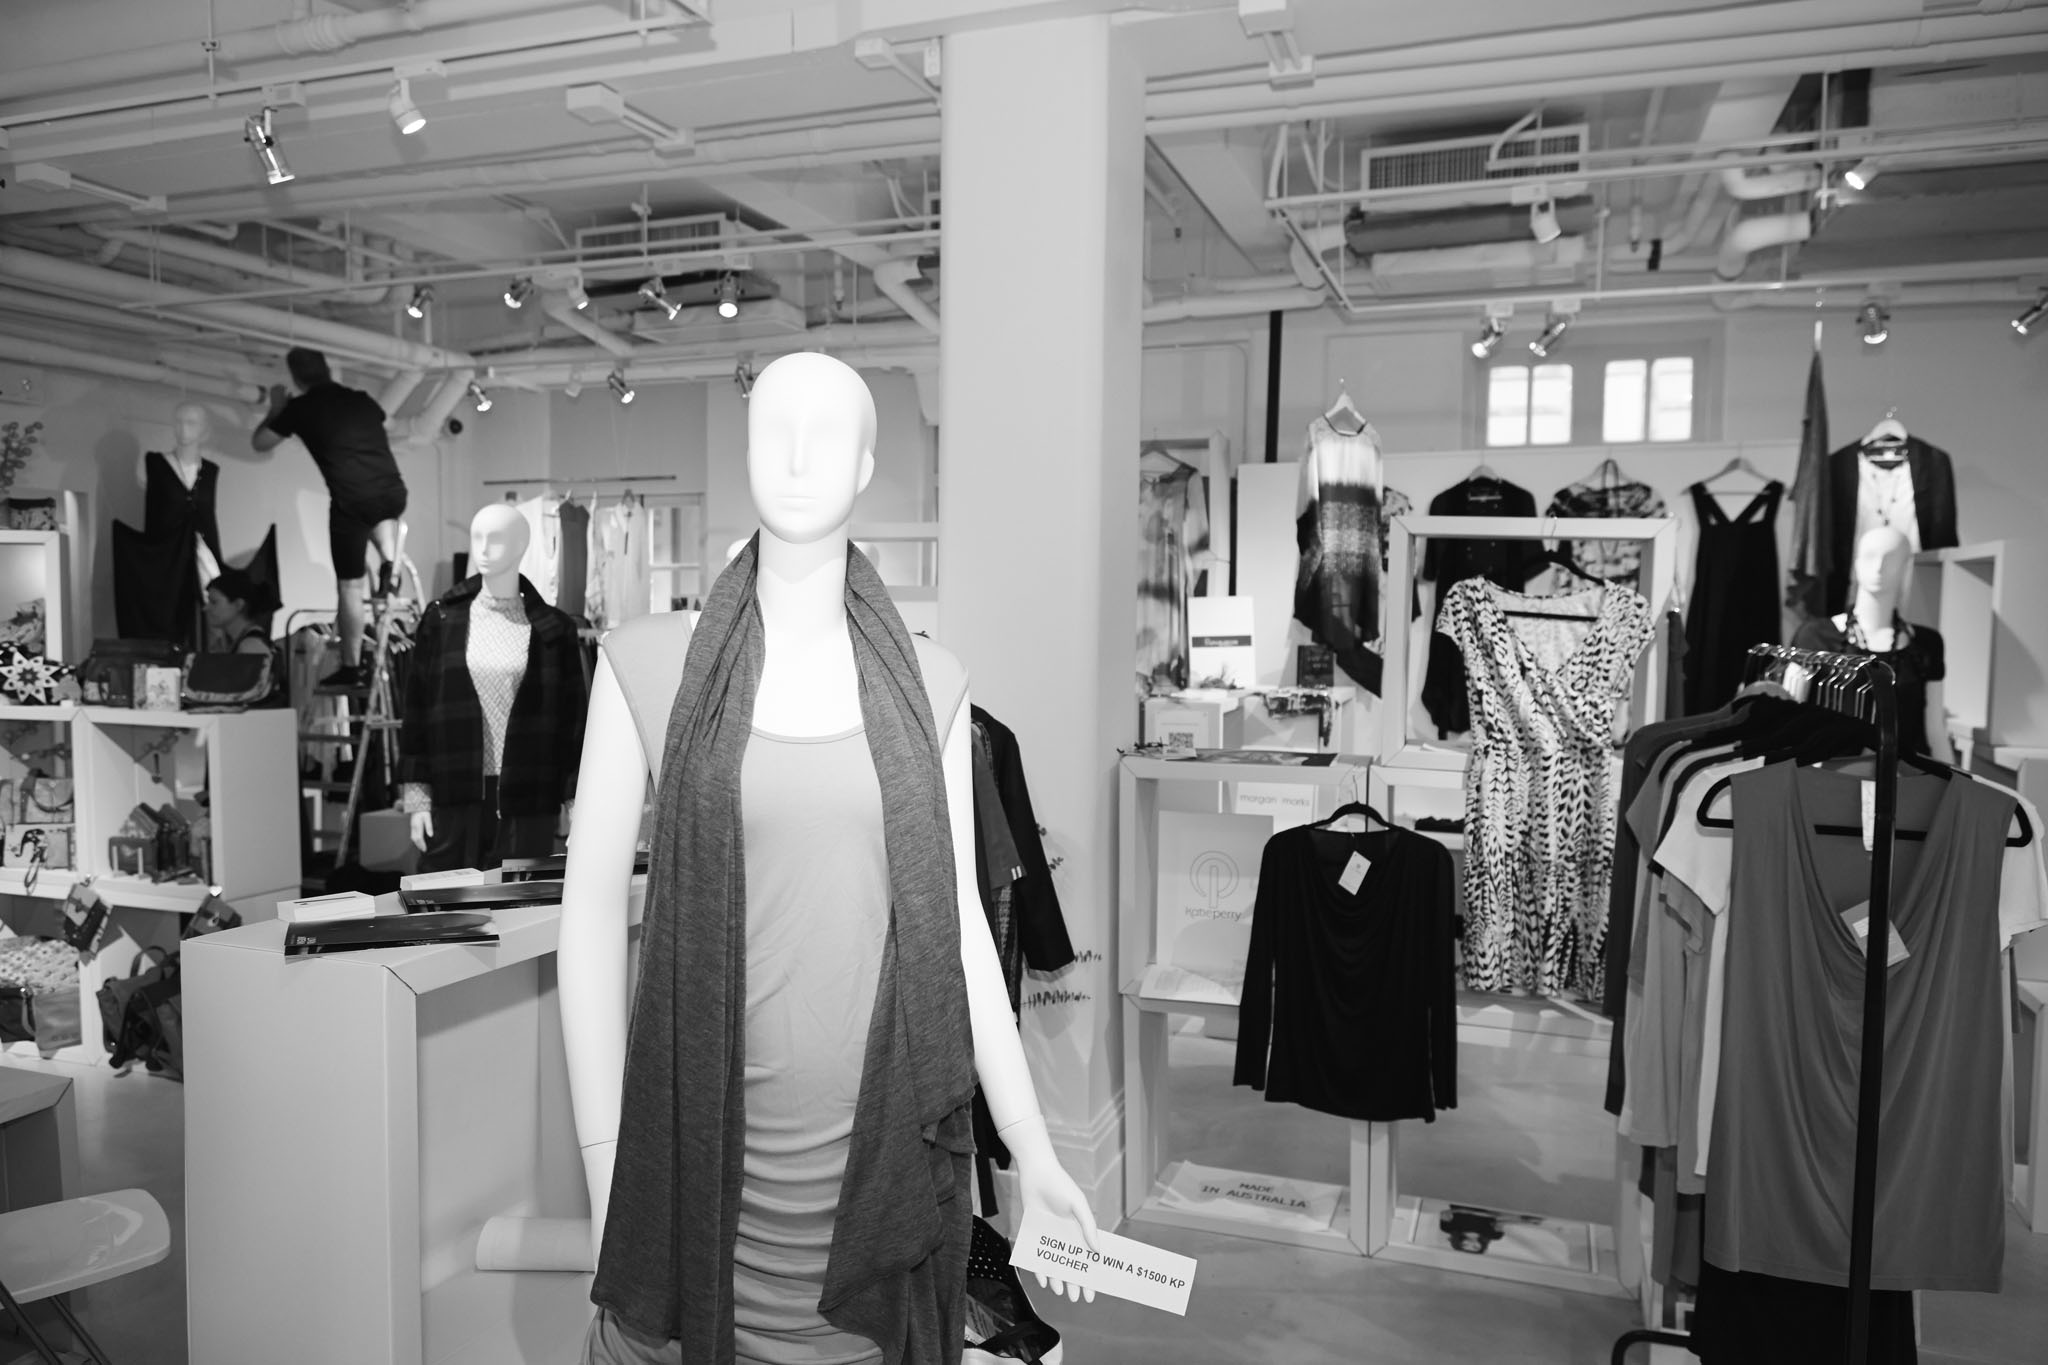 NS277_TFIA_CommonThreads_150824_0063_BW_HR.jpg